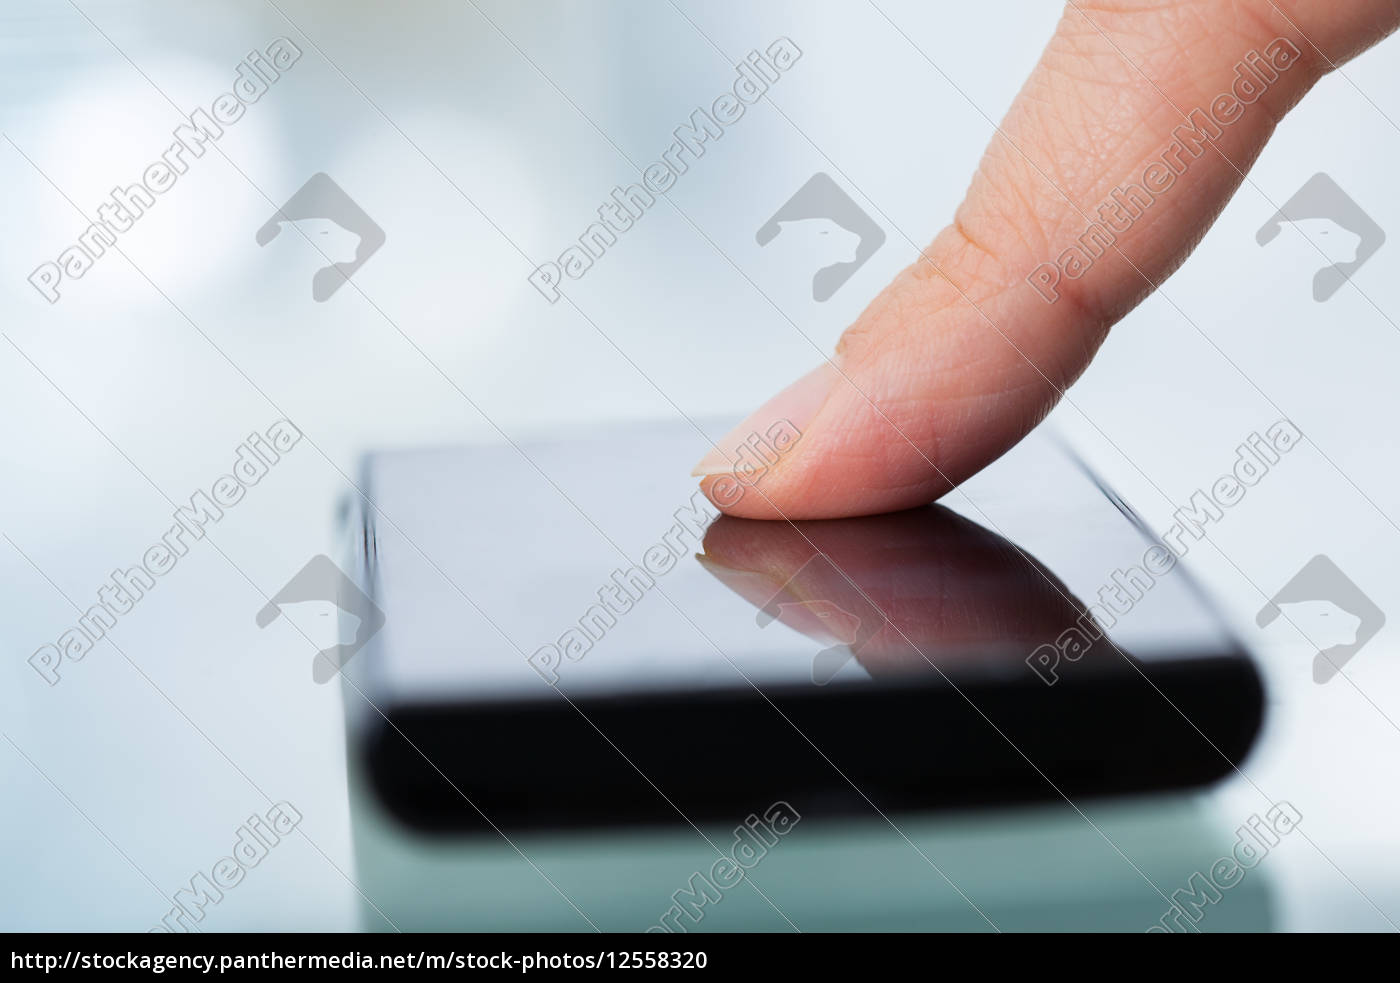 finger, touching, smartphone - 12558320